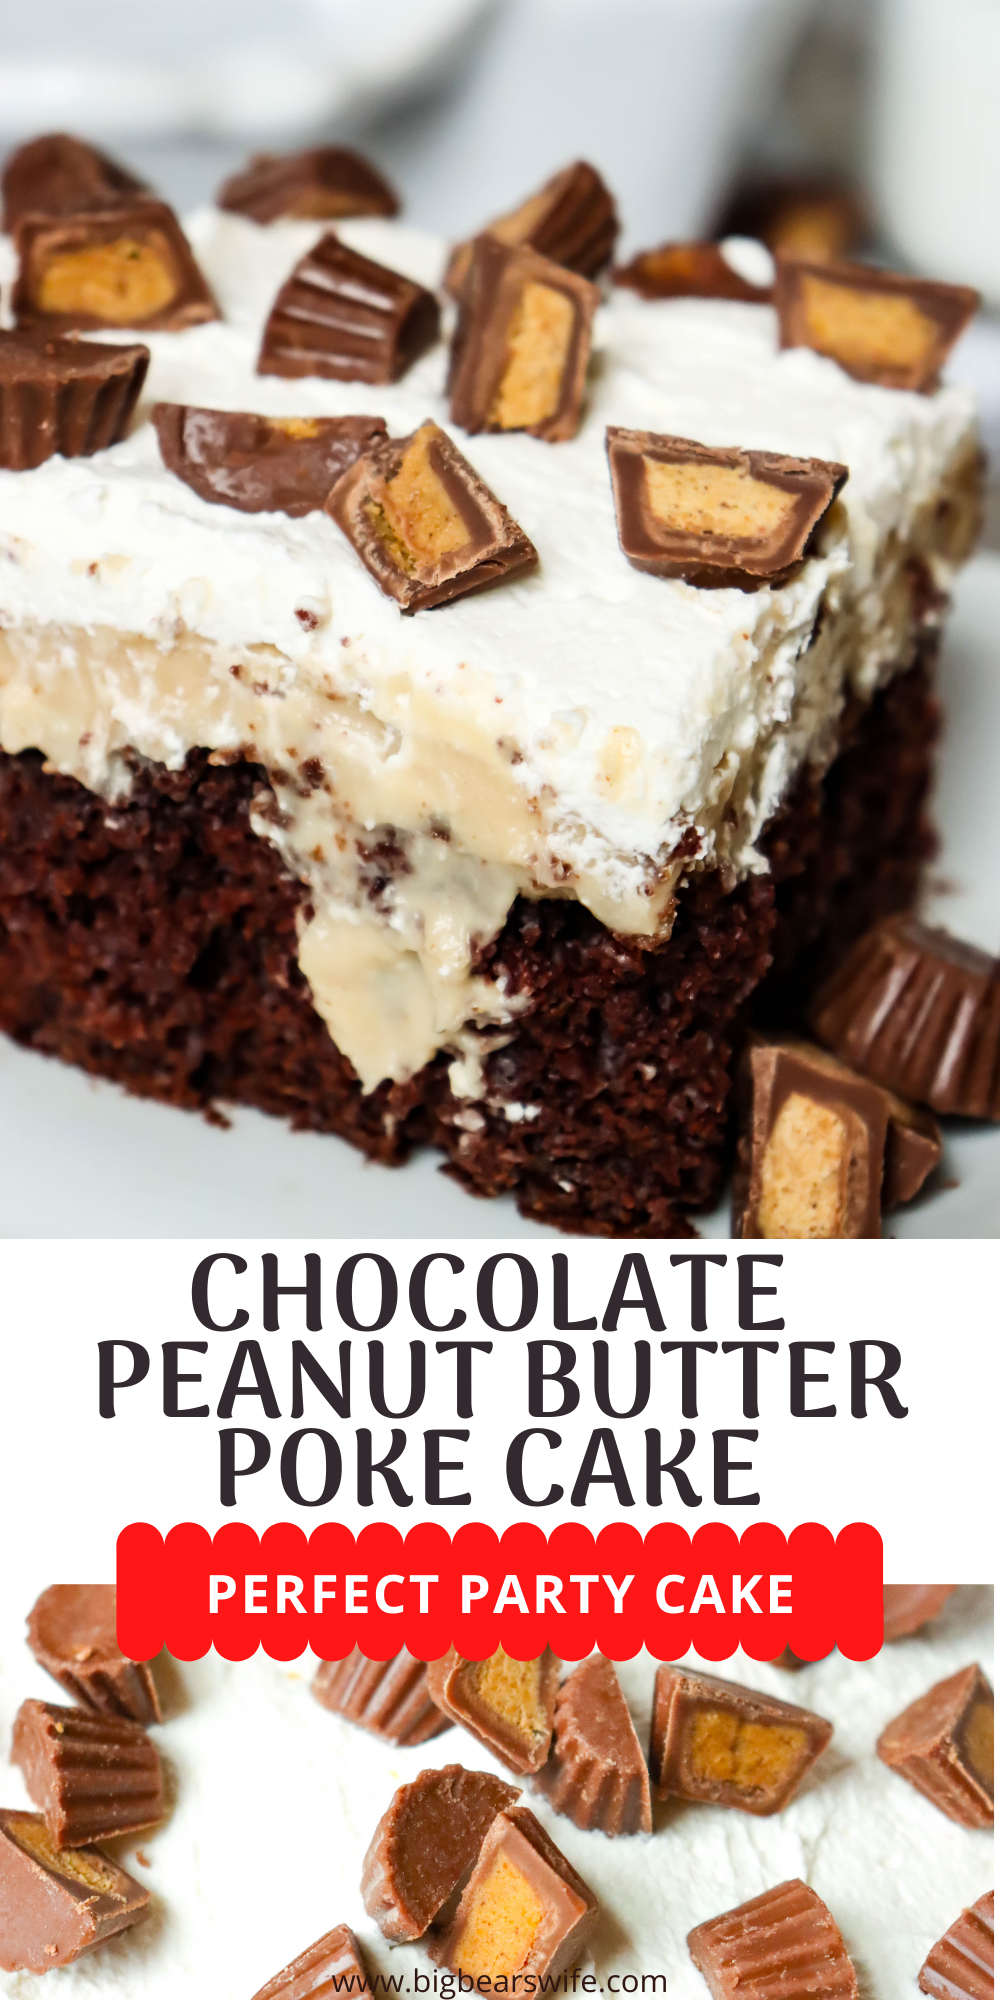 This Chocolate Peanut Butter Poke Cake is a rich homemade chocolate cake topped with homemade peanut butter pudding, Crème Chantilly and chopped peanut butter cups makes the perfect treat! Peanut Butter and Chocolate lovers will go crazy over this fun cake! via @bigbearswife